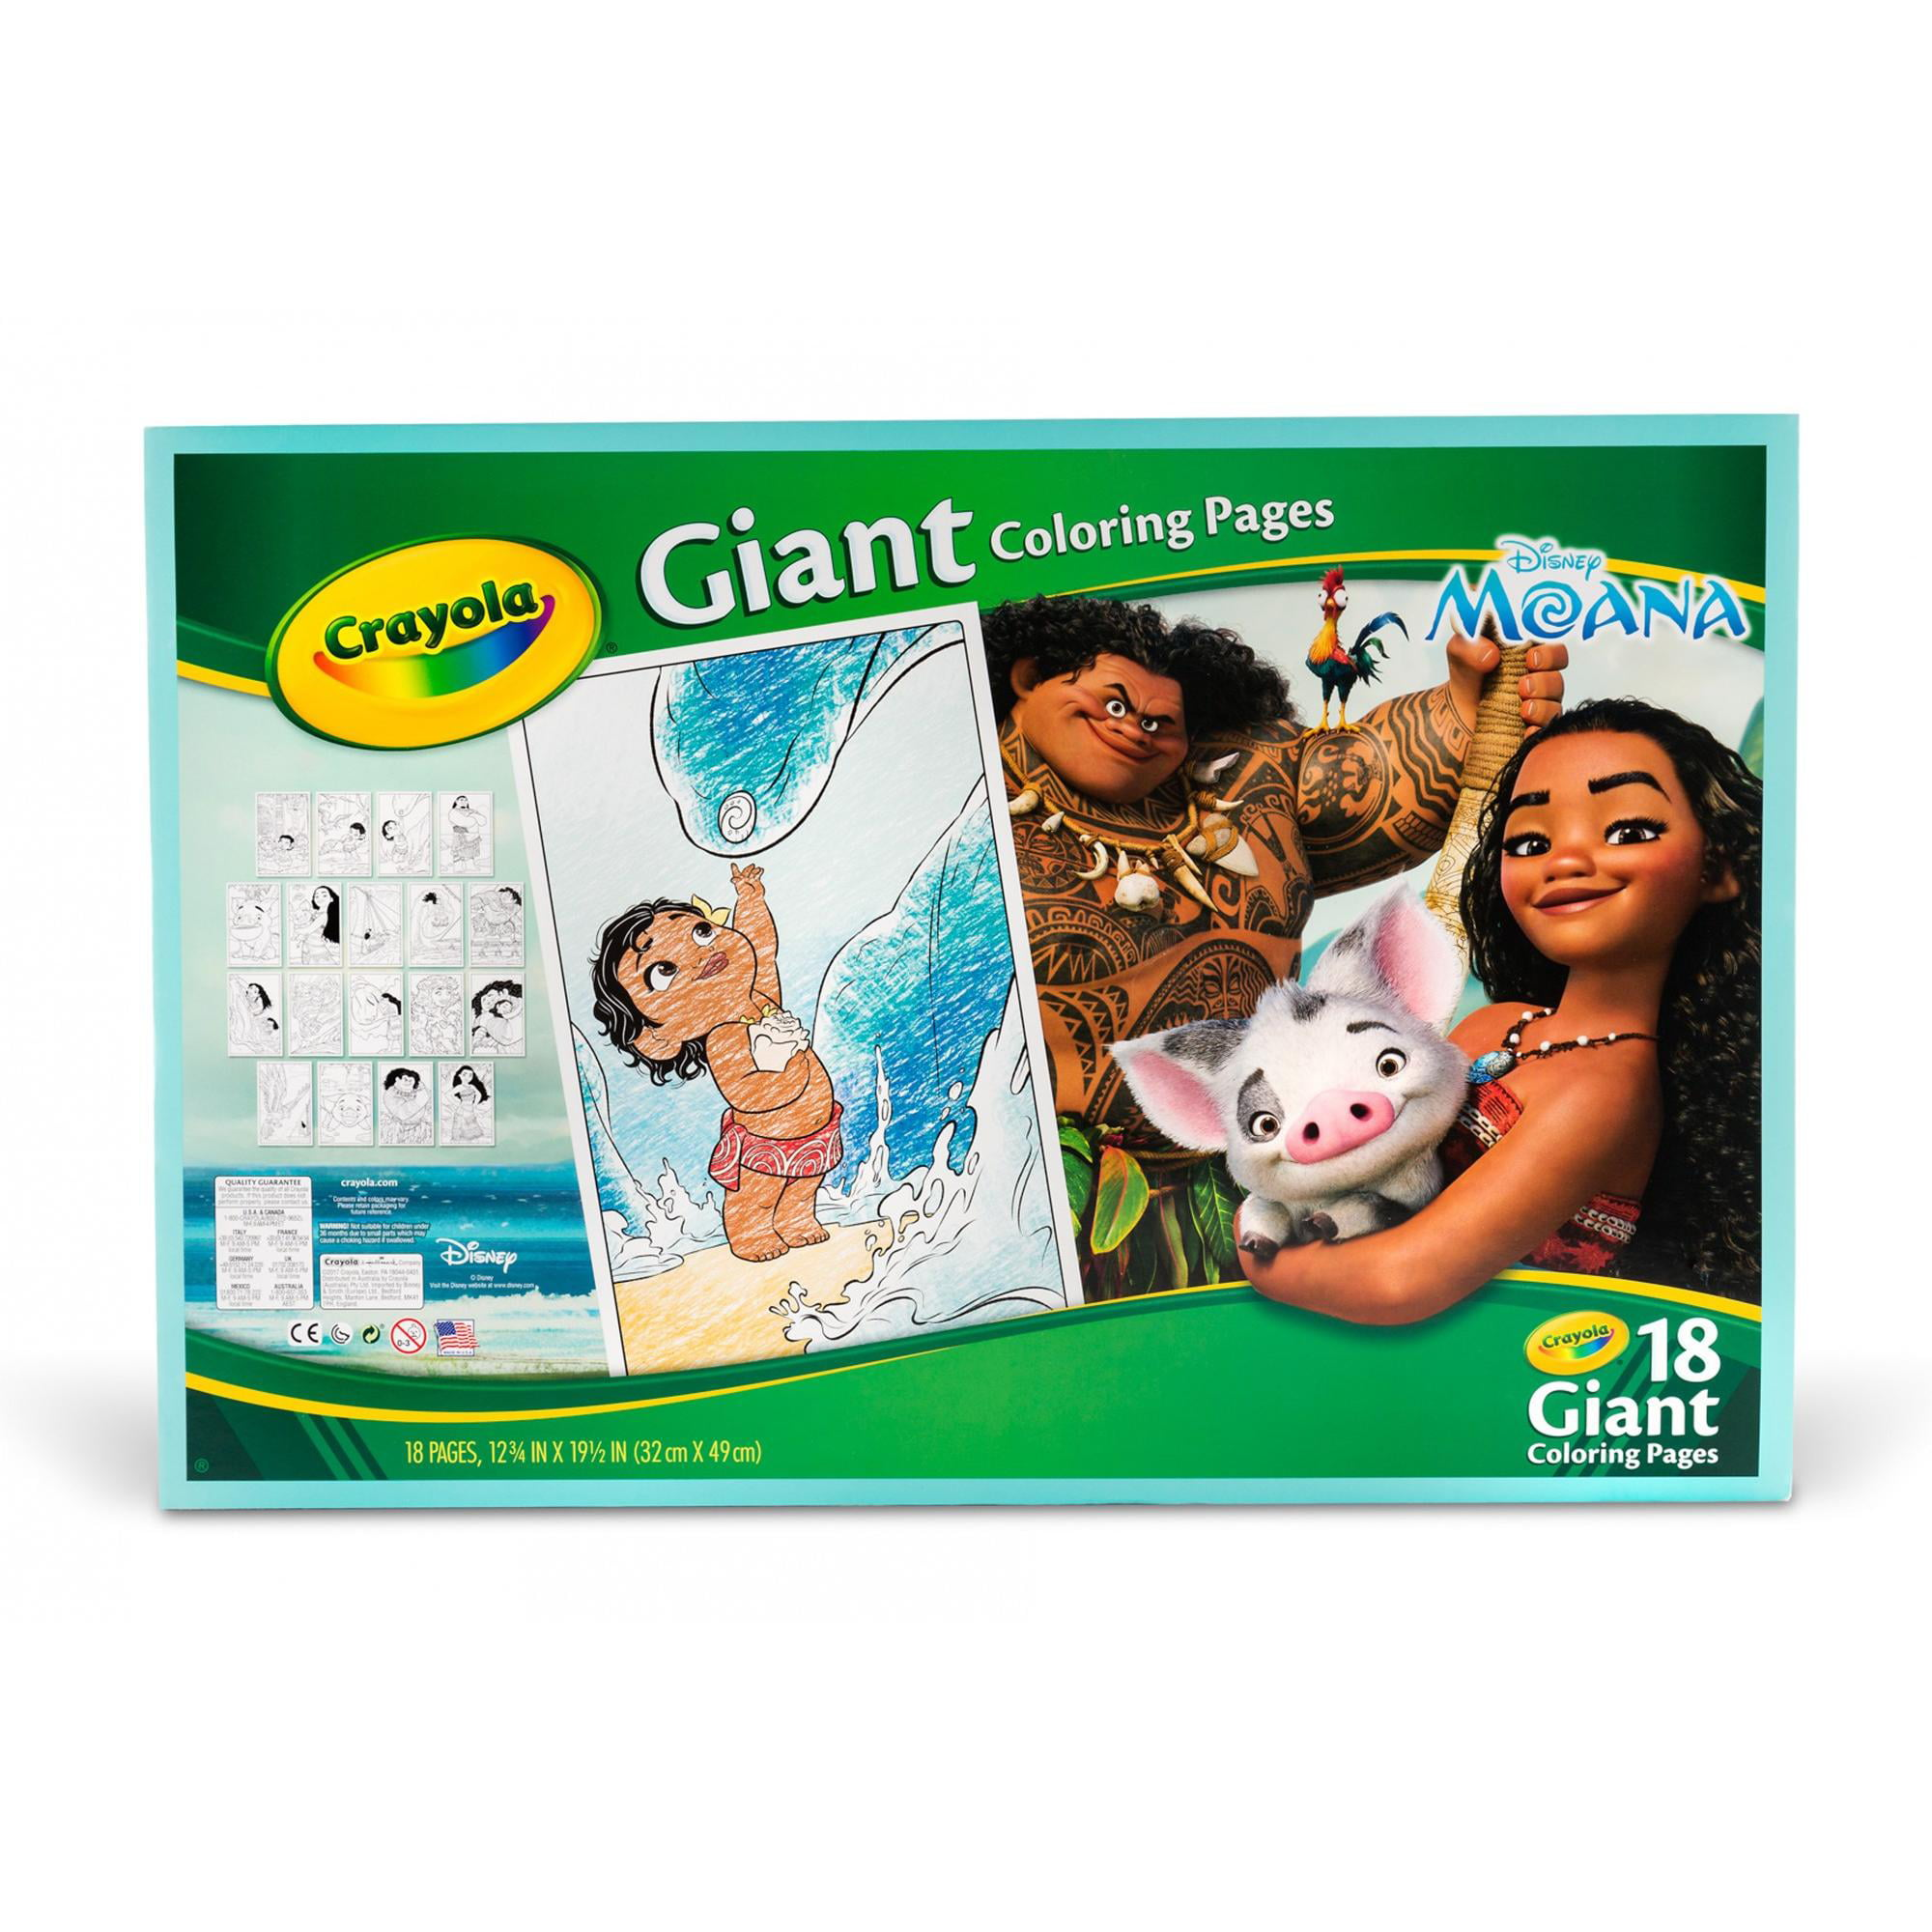 Crayola, Disney\'s Moana, 18 Giant Coloring Pages, Gift for Girls ...